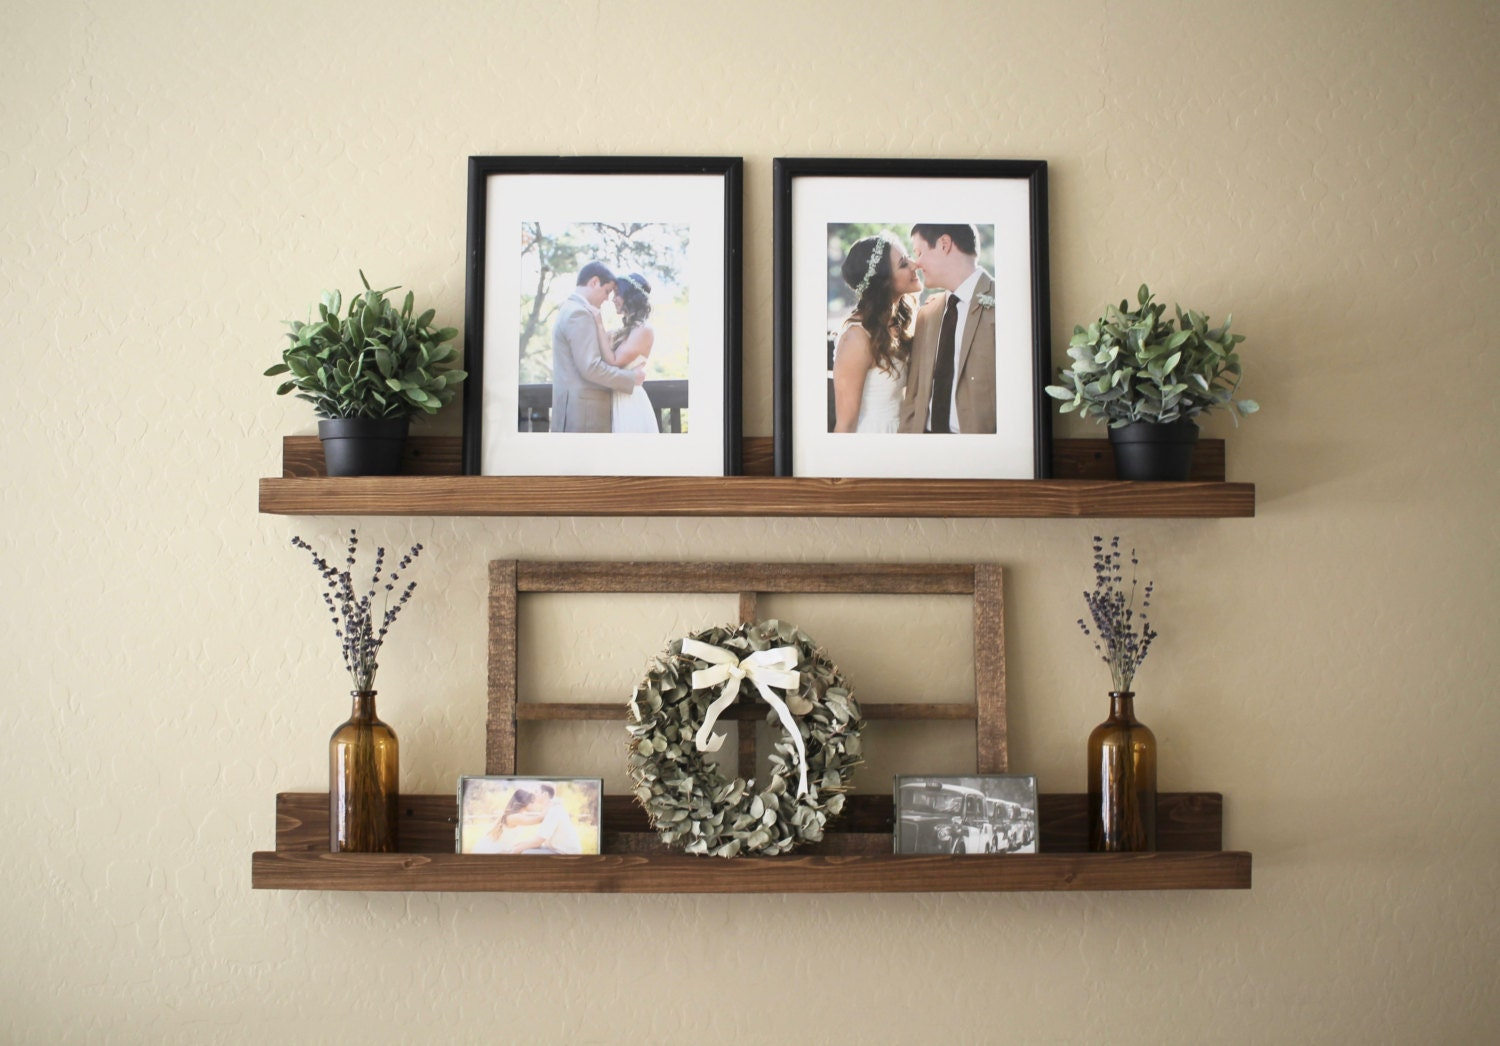 rustic wooden picture ledge shelf ledge shelf ledge shelves. Black Bedroom Furniture Sets. Home Design Ideas